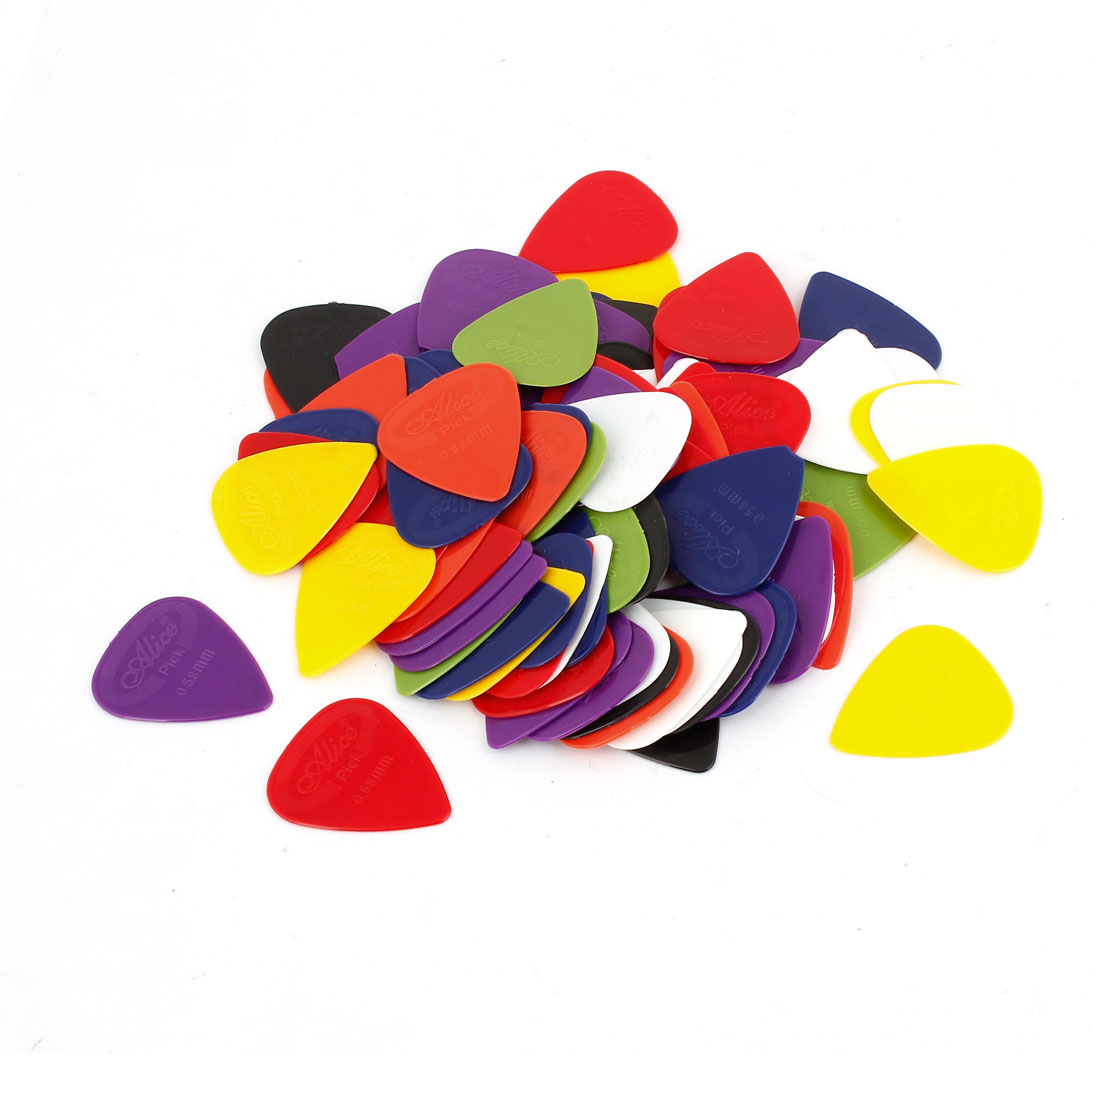 100 Pcs Heart Shaped Music Accessory 0.58mm Guitar Assorted Color Picks Plectrums